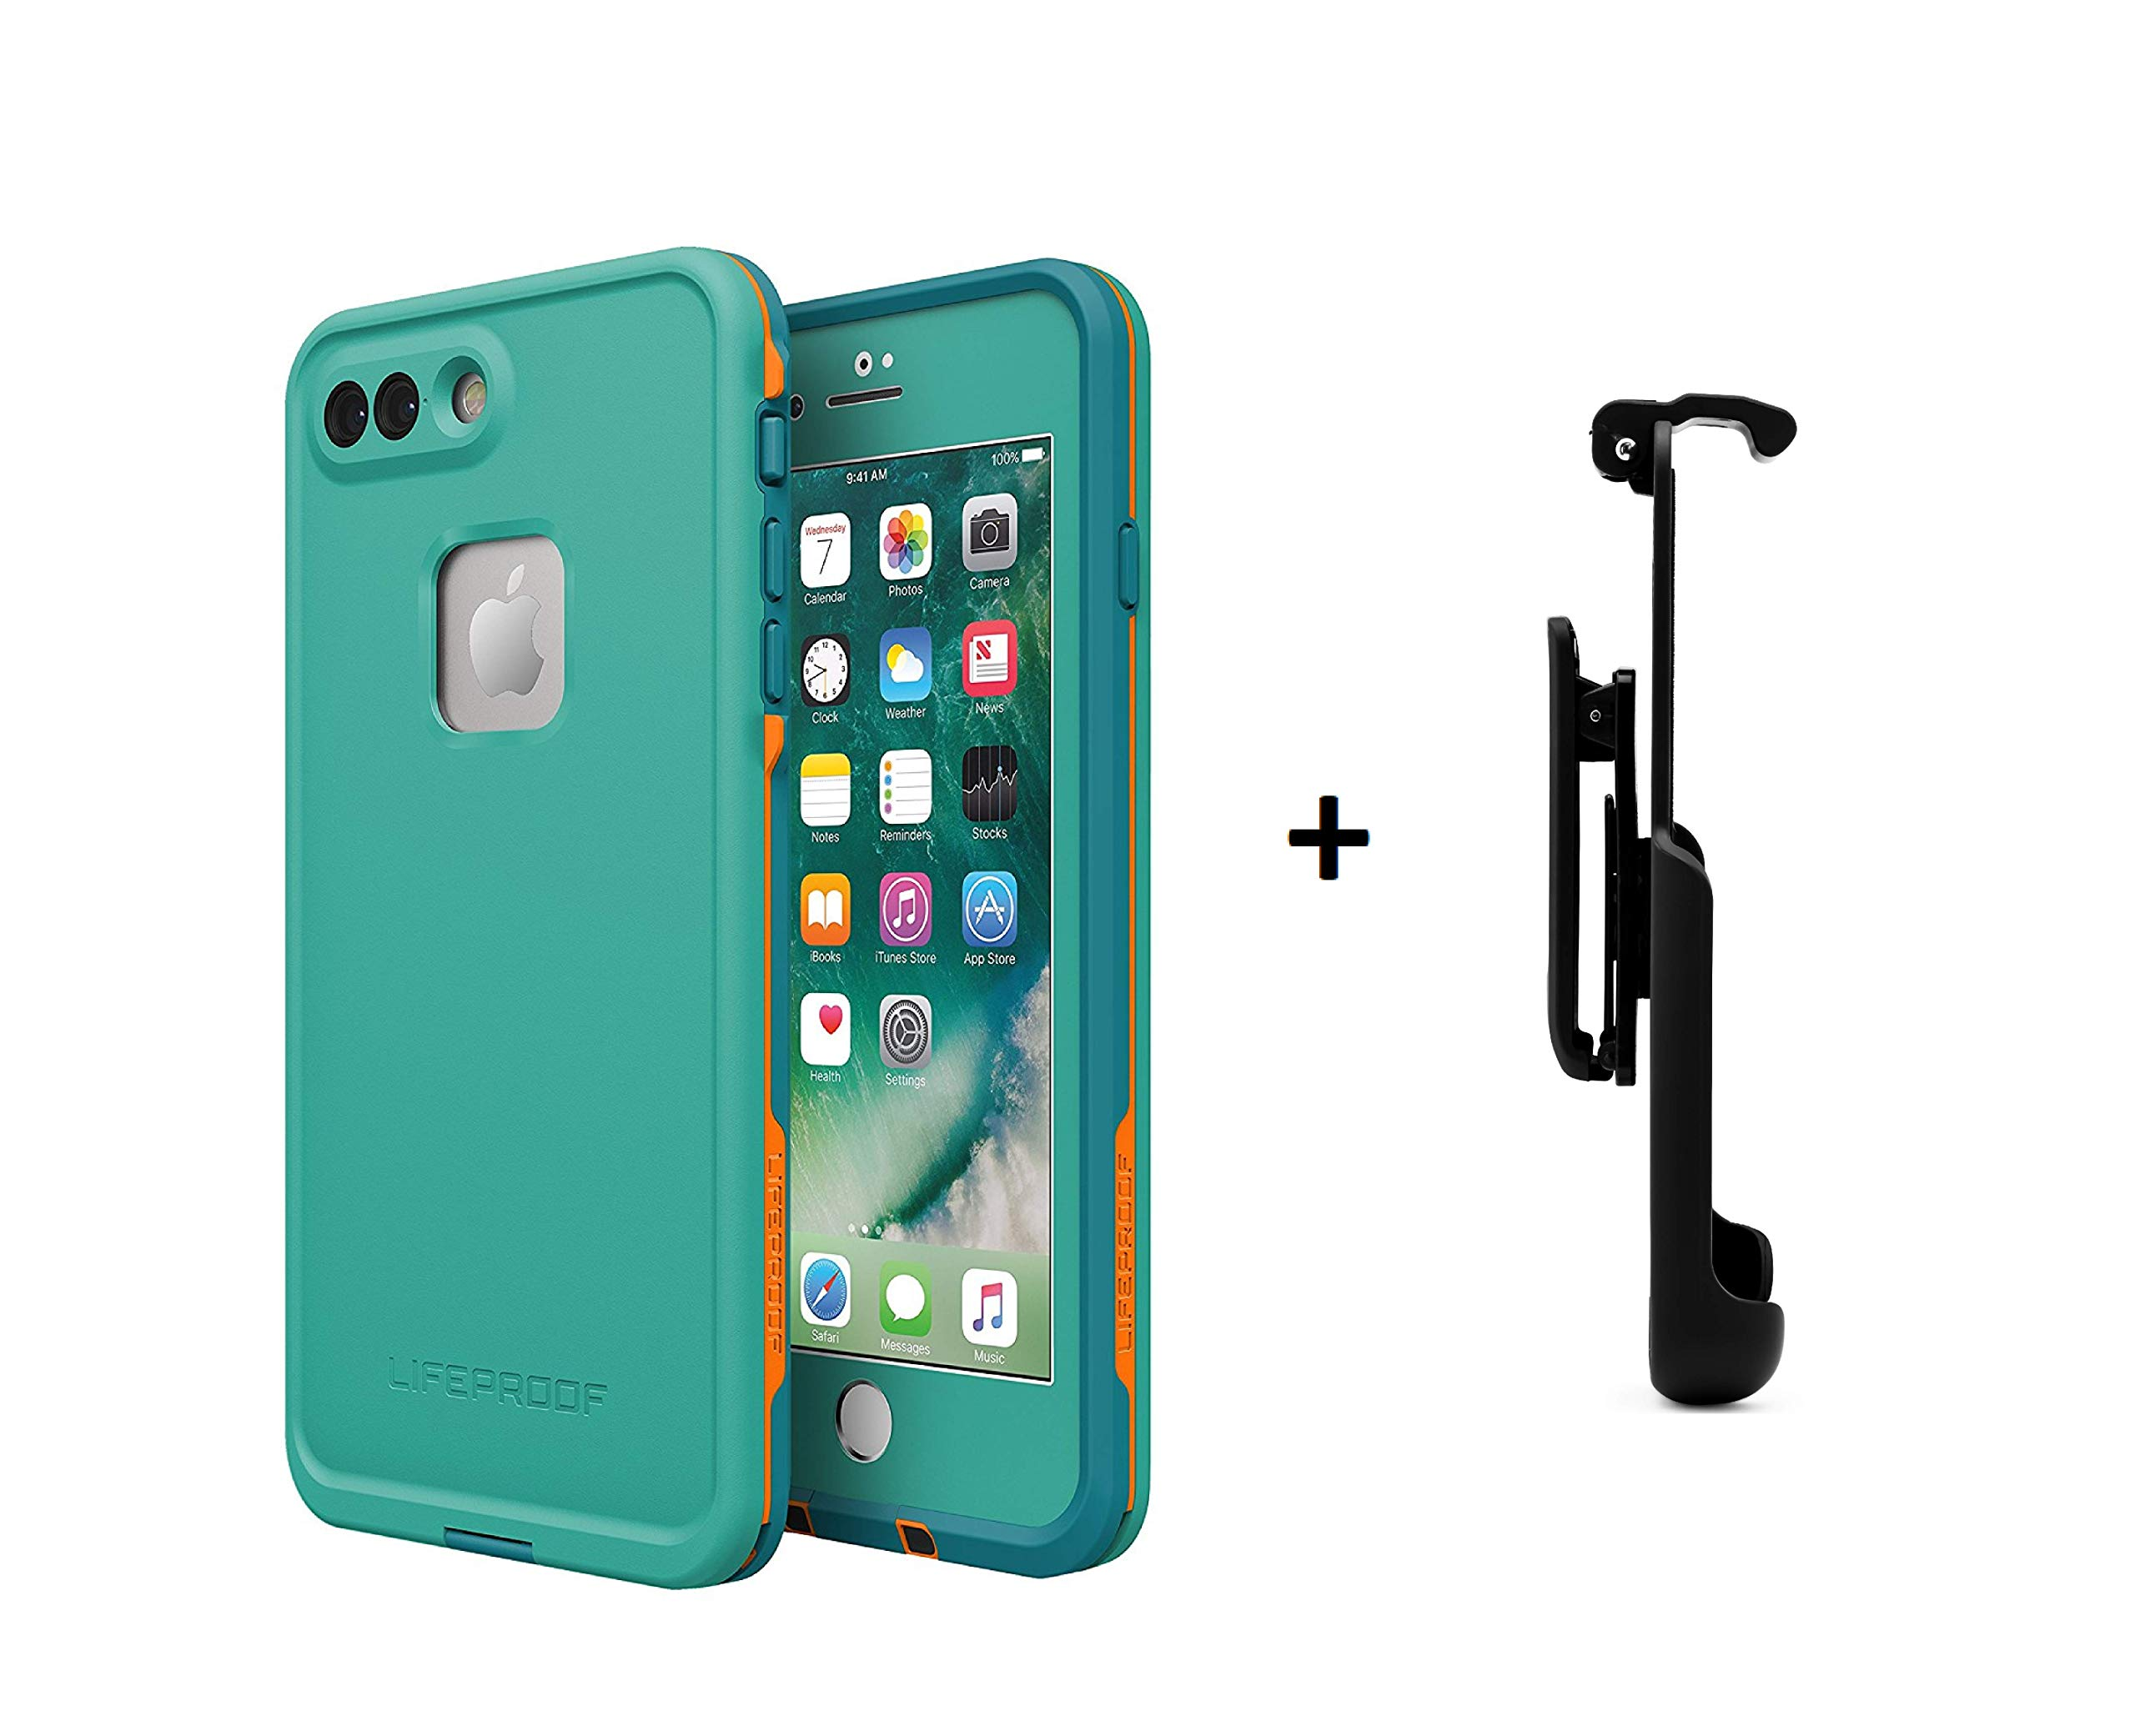 Lifeproof FRĒ Series Waterproof Case for iPhone 8 Plus & 7 Plus (ONLY) - Retail Packaging (Sunset Bay + Belt Clip)